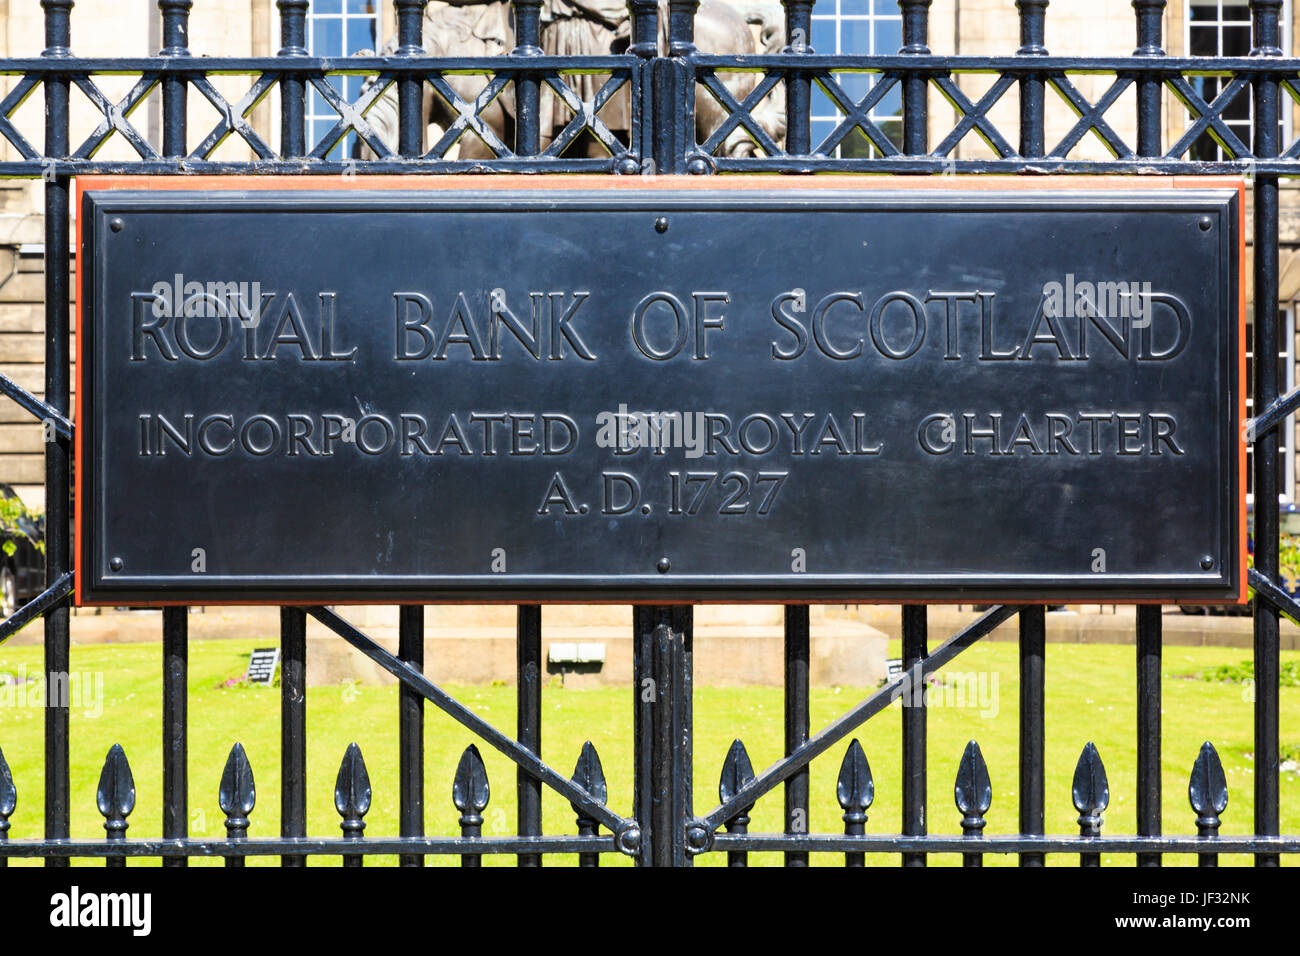 royal-bank-of-scotland-edinburgh-scotlan